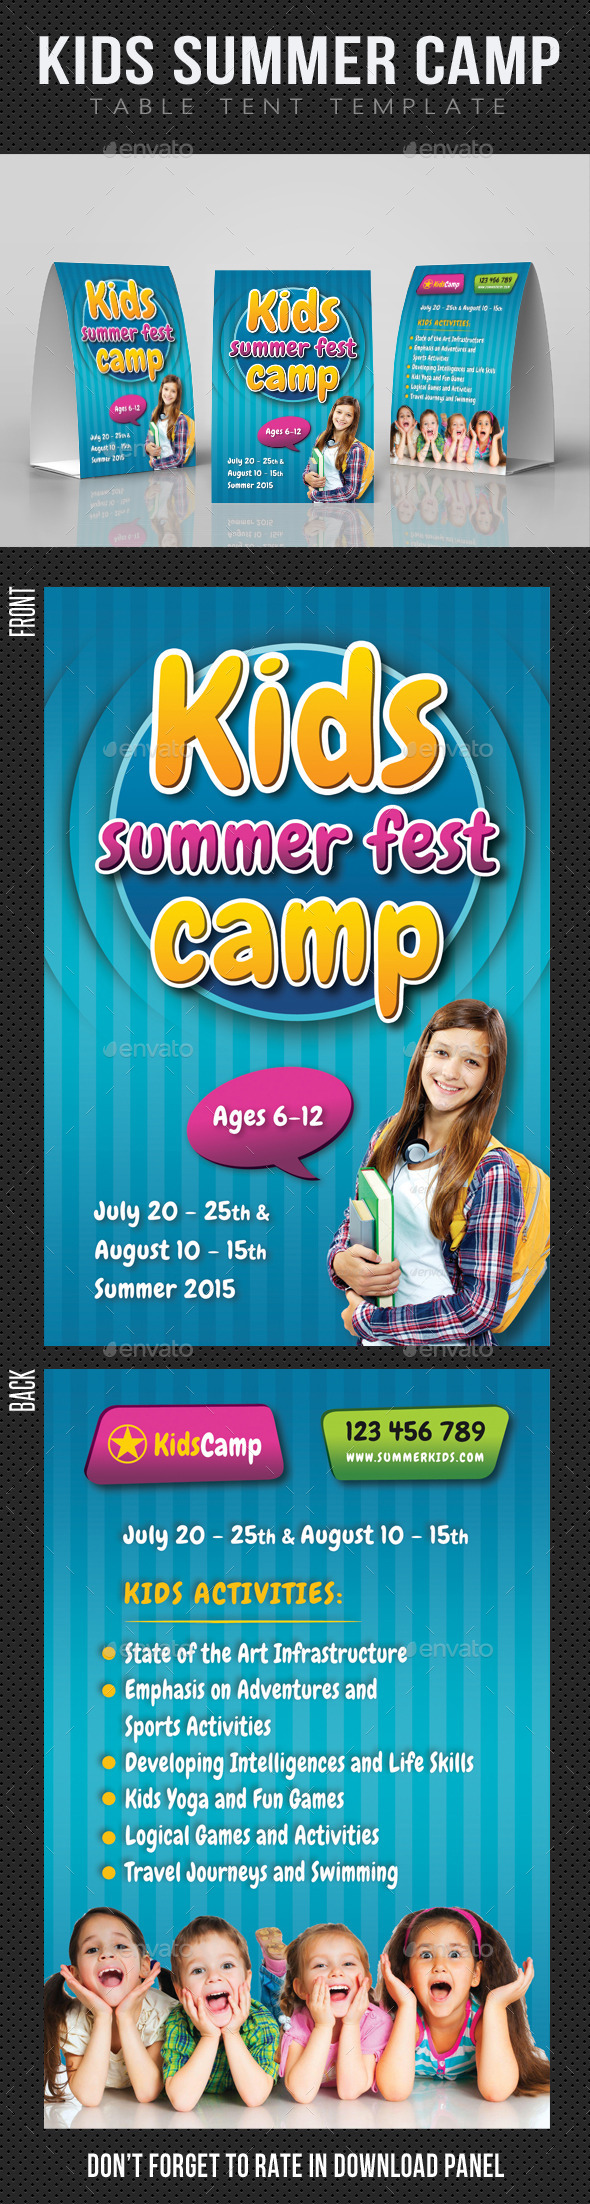 Kids Summer Camp Table Tent Template